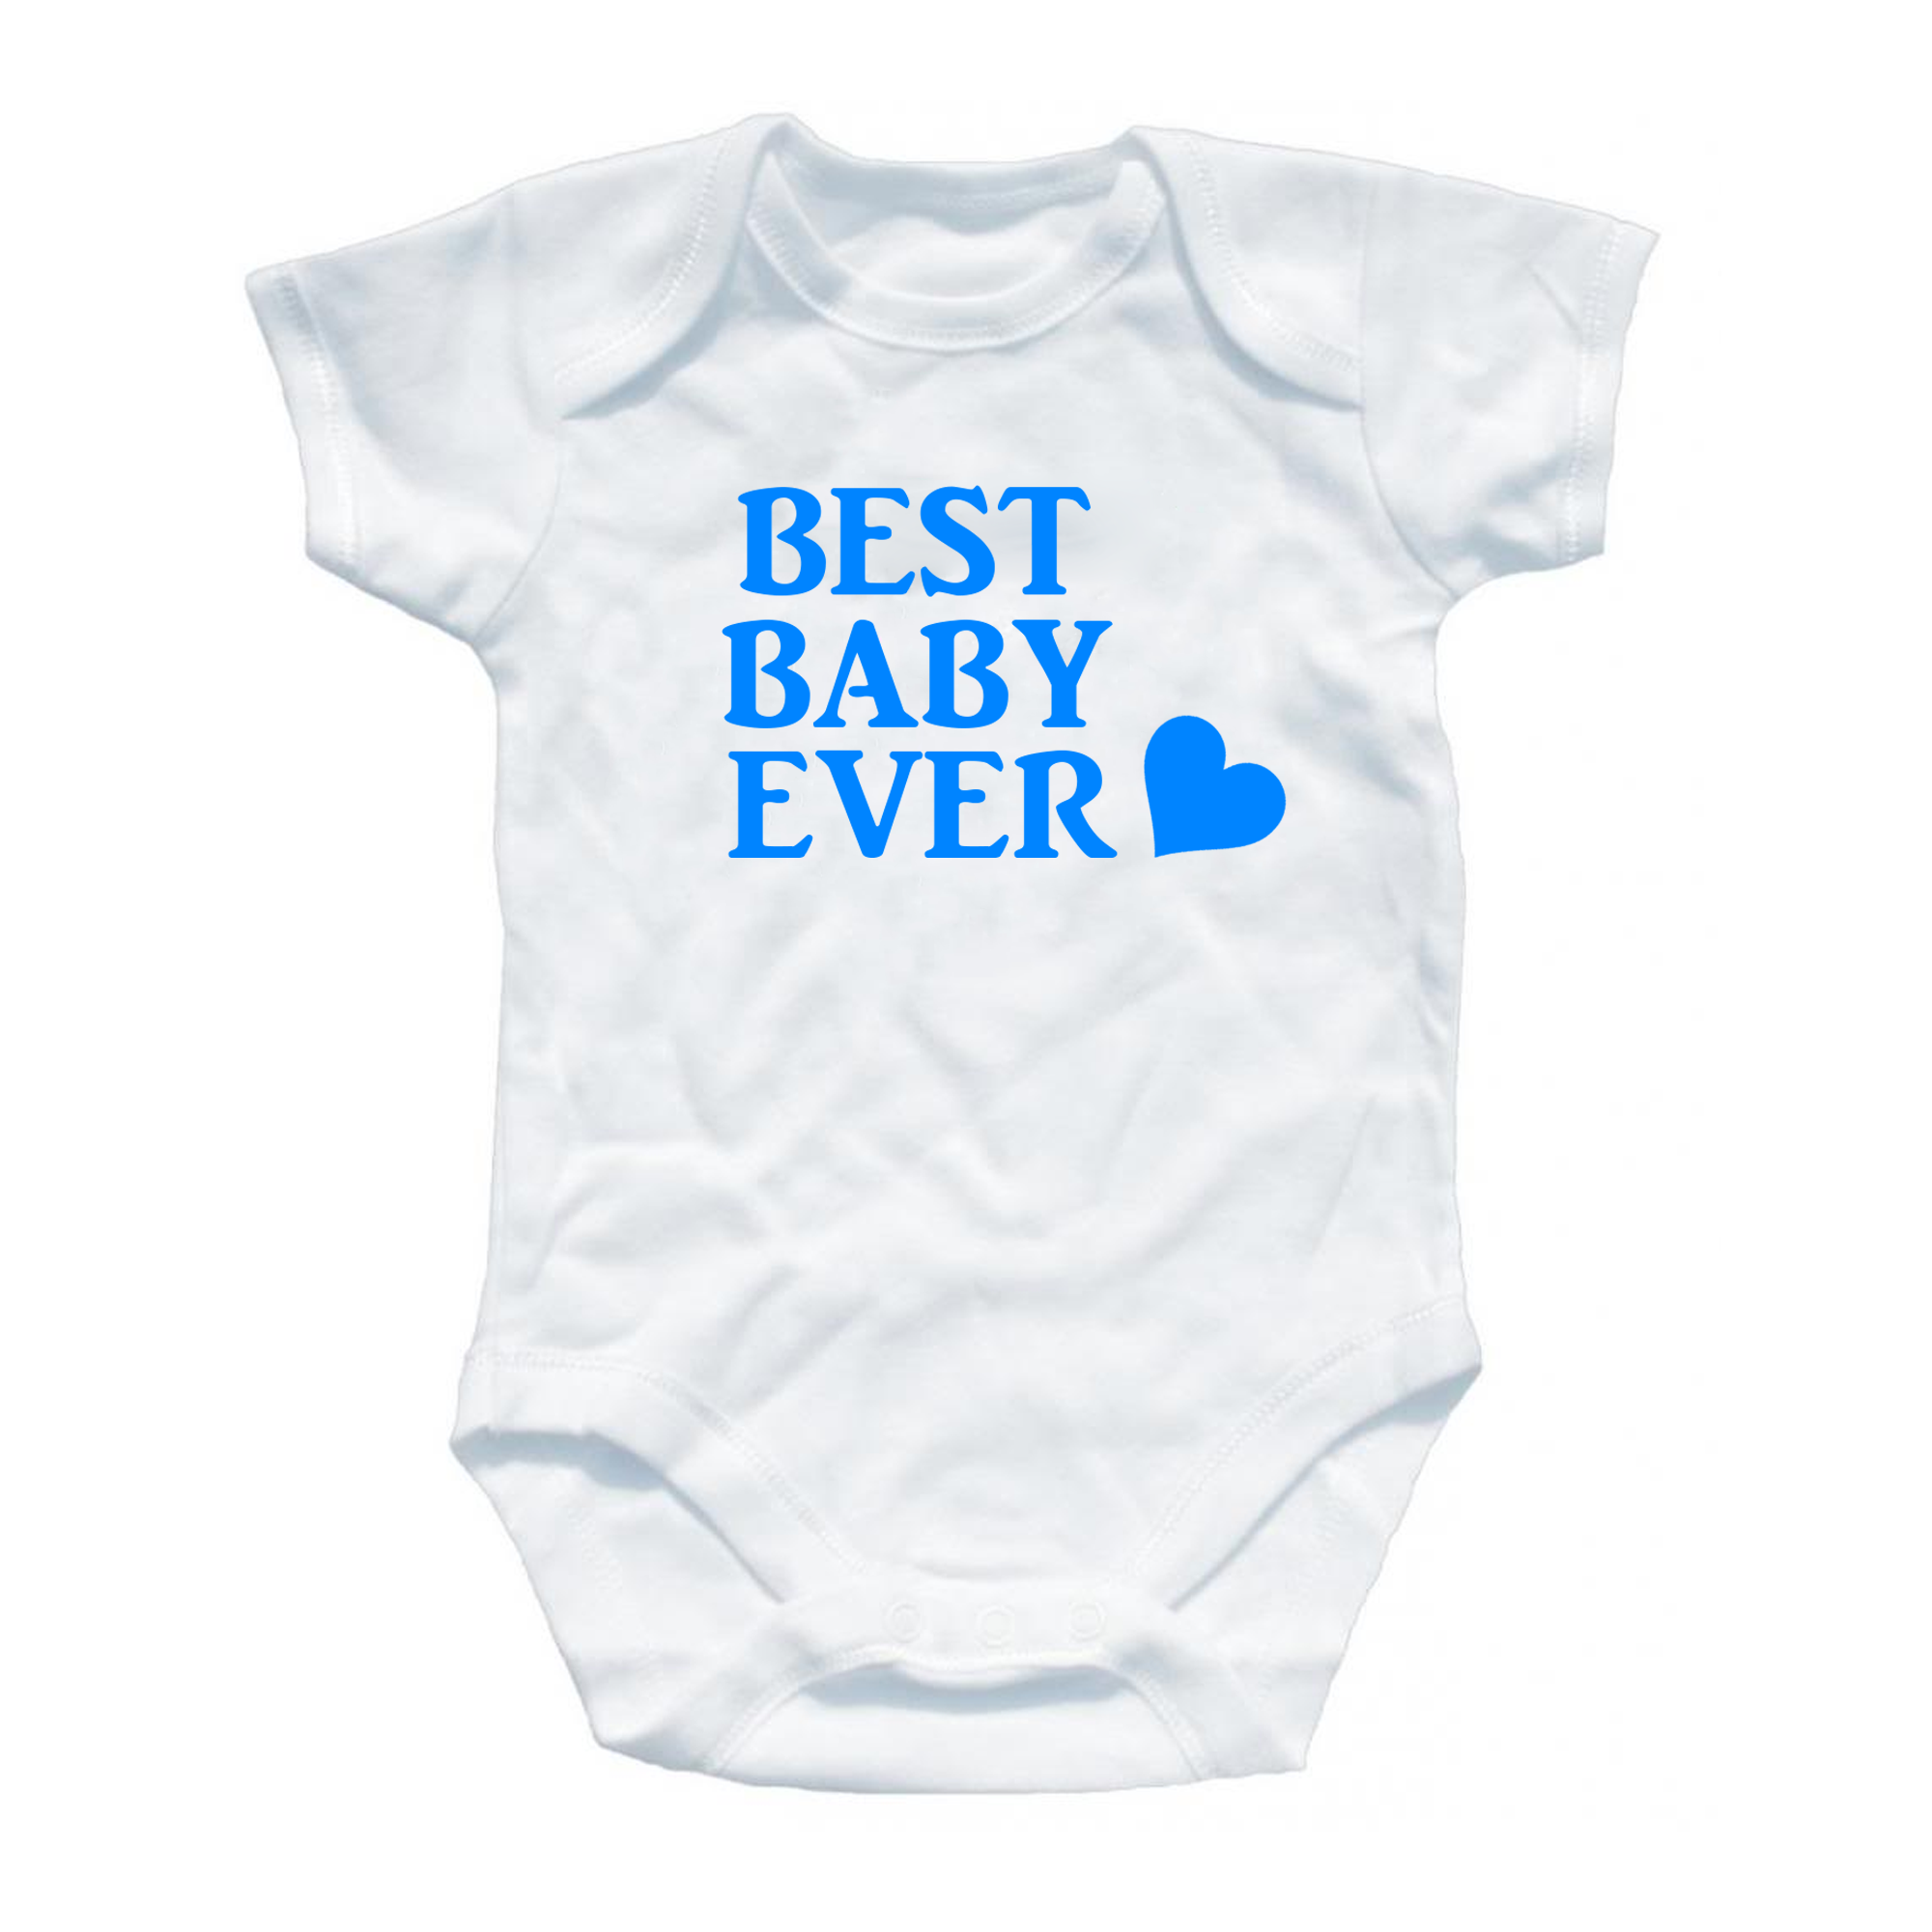 Everyone loves a bouncing baby, but not everyone loves run-of-the-mill baby shower games. Here are the Top 20 Best Baby Shower Games-from Beau-coup to you!